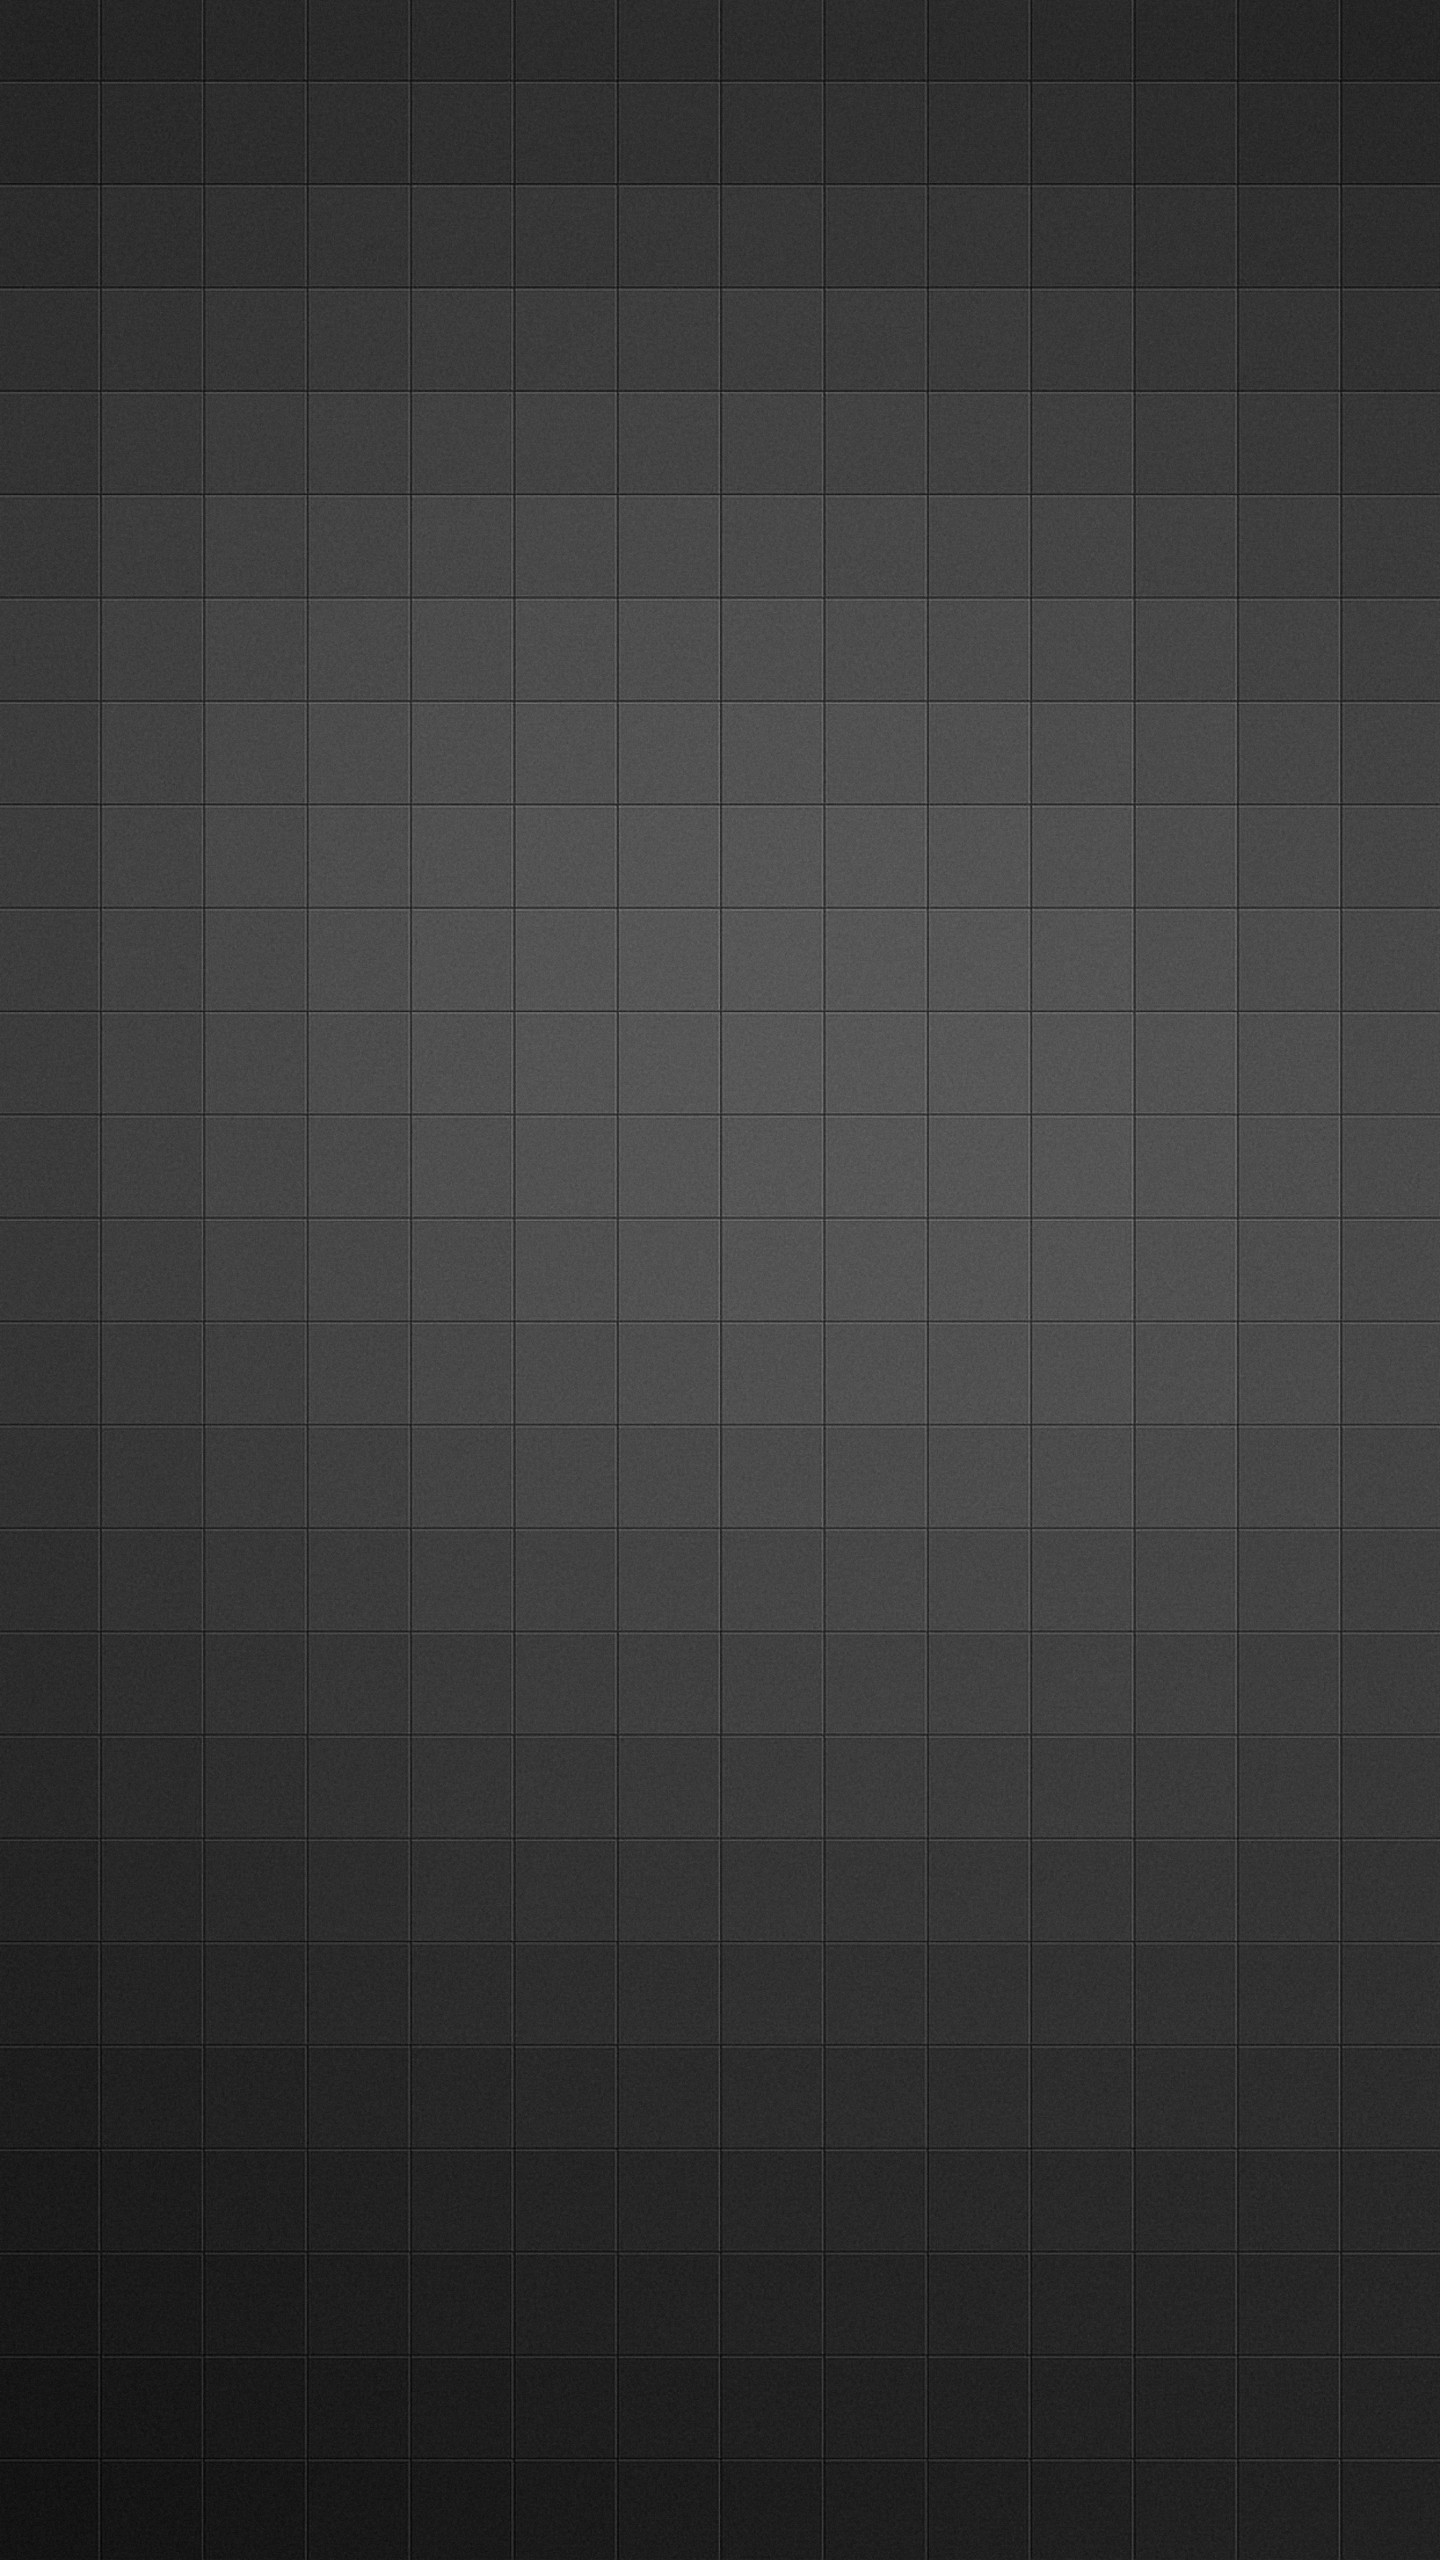 Abstract Dark Grey Mosaic htc one Wallpaper HD Mobile